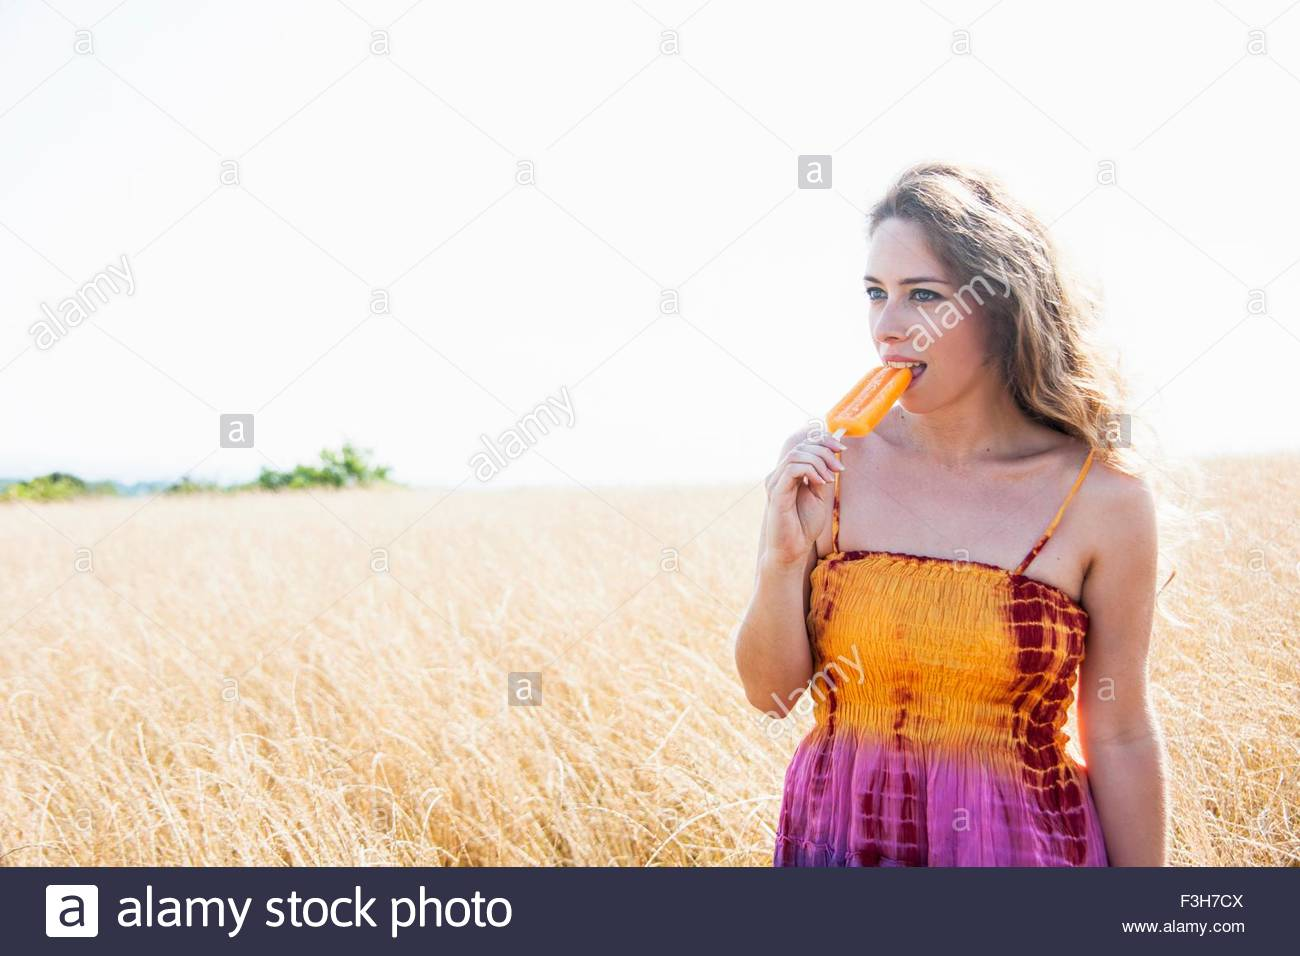 3e7dcb6f Portrait of mid adult woman, in hippy clothes, in field, eating ice lolly